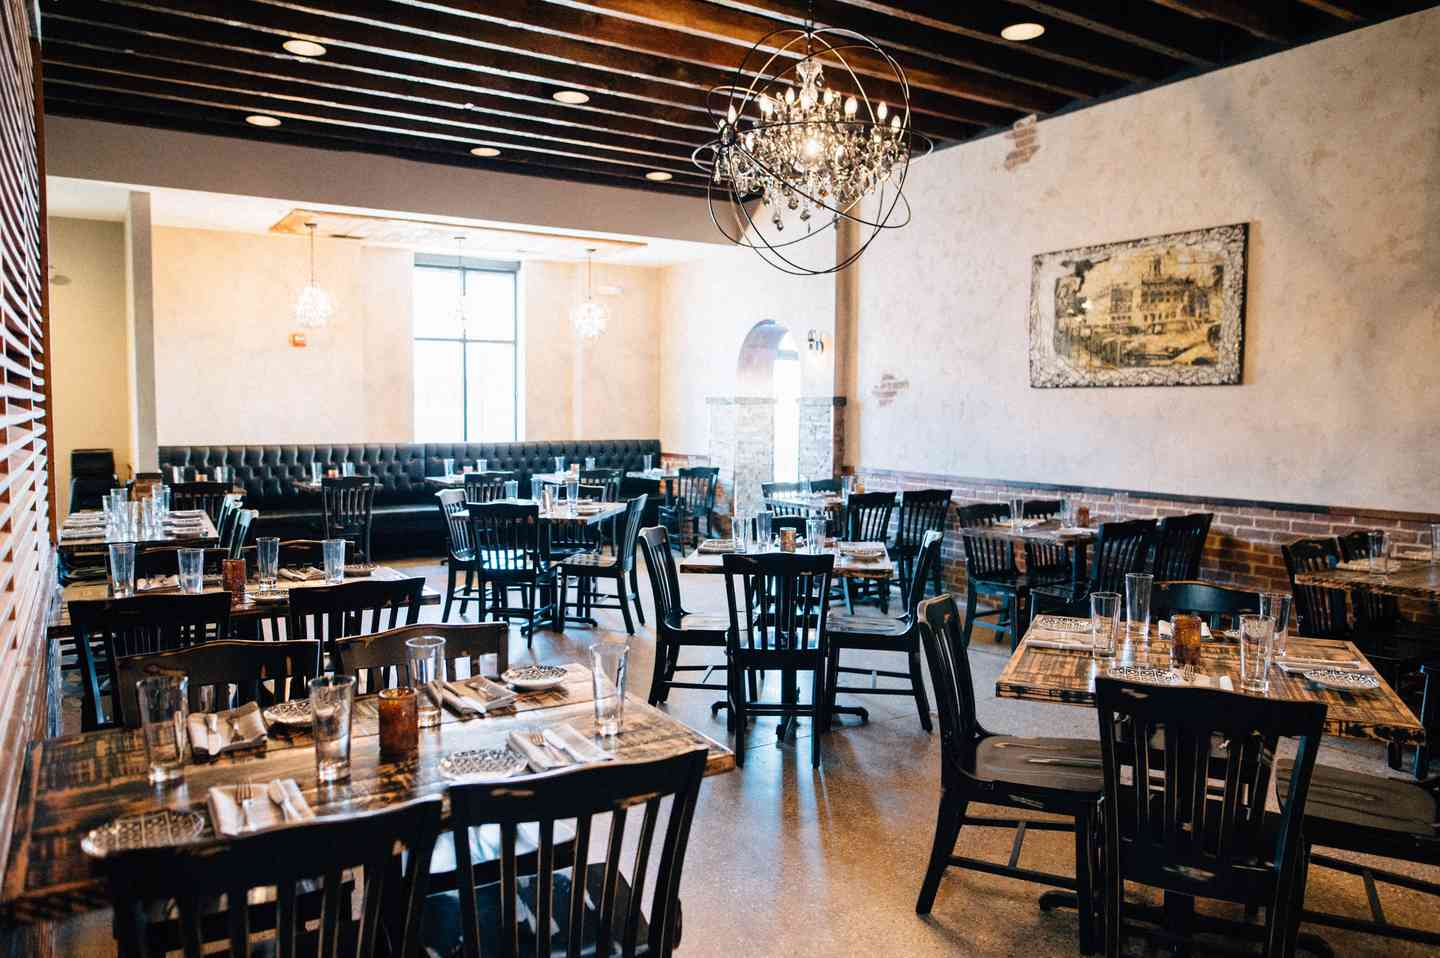 Large Parties Mad Chef Kitchen Bar American Restaurant In Ellicott City Md